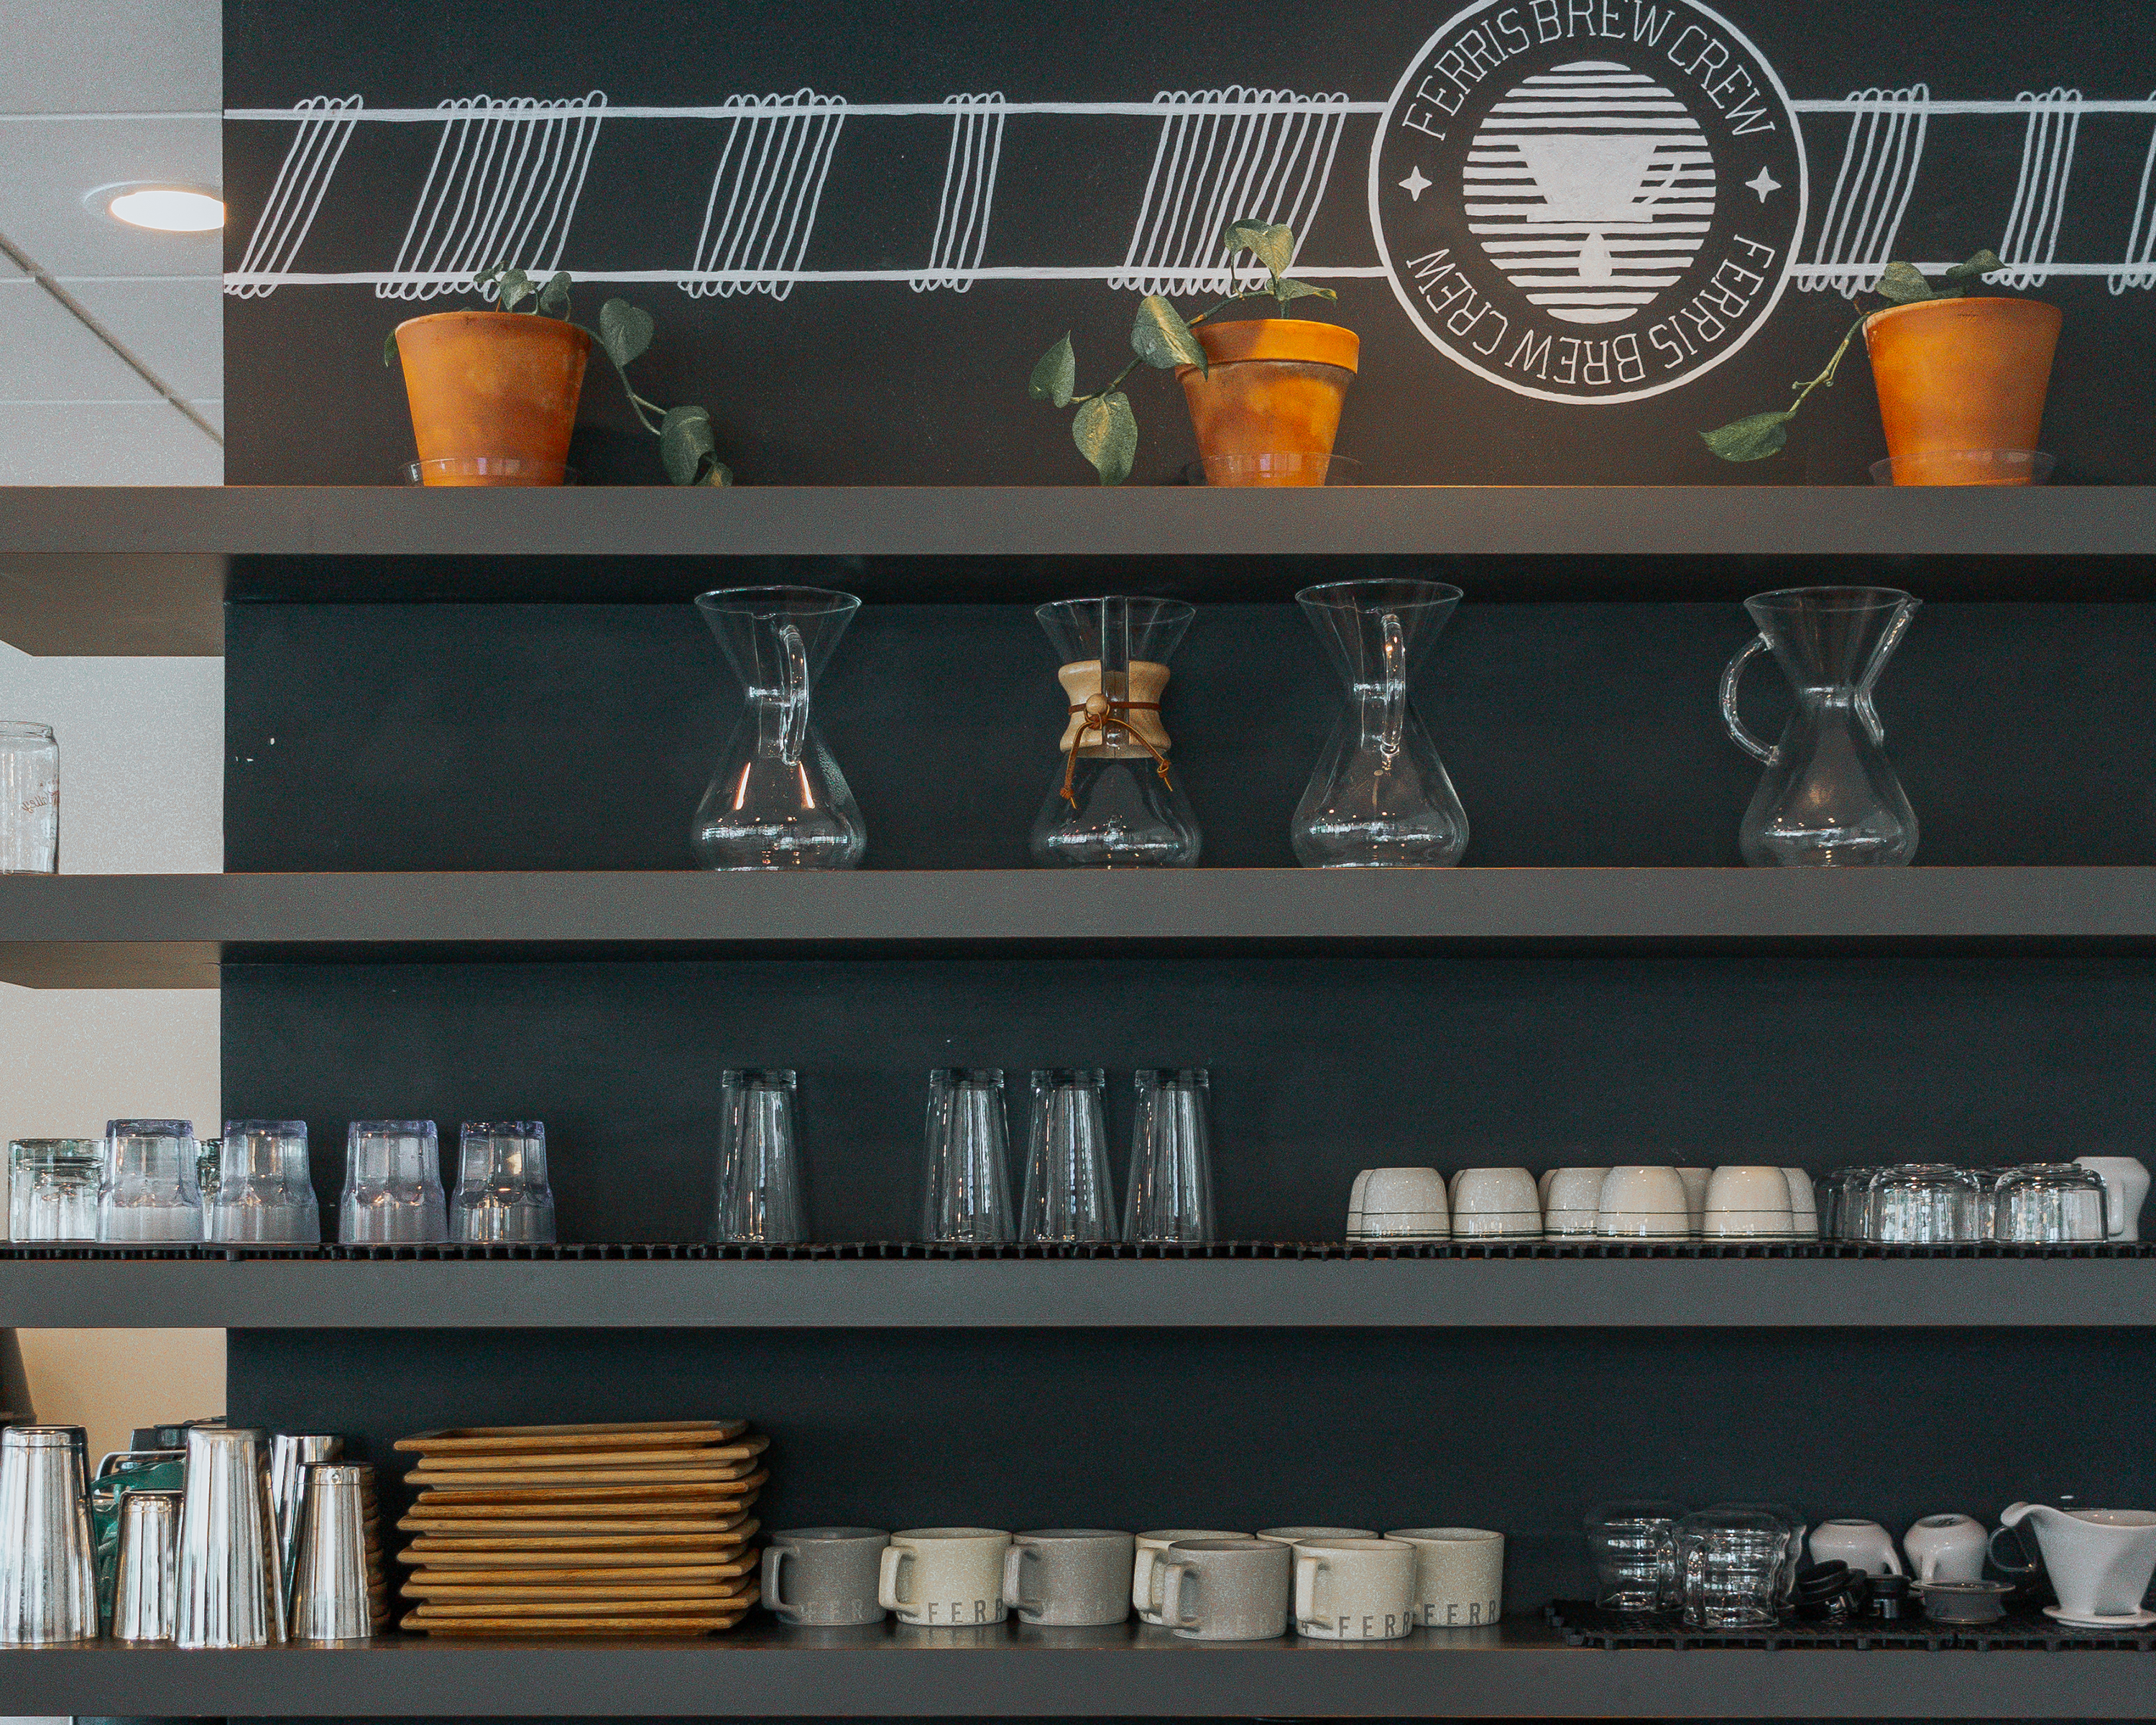 shelves of coffee equipment